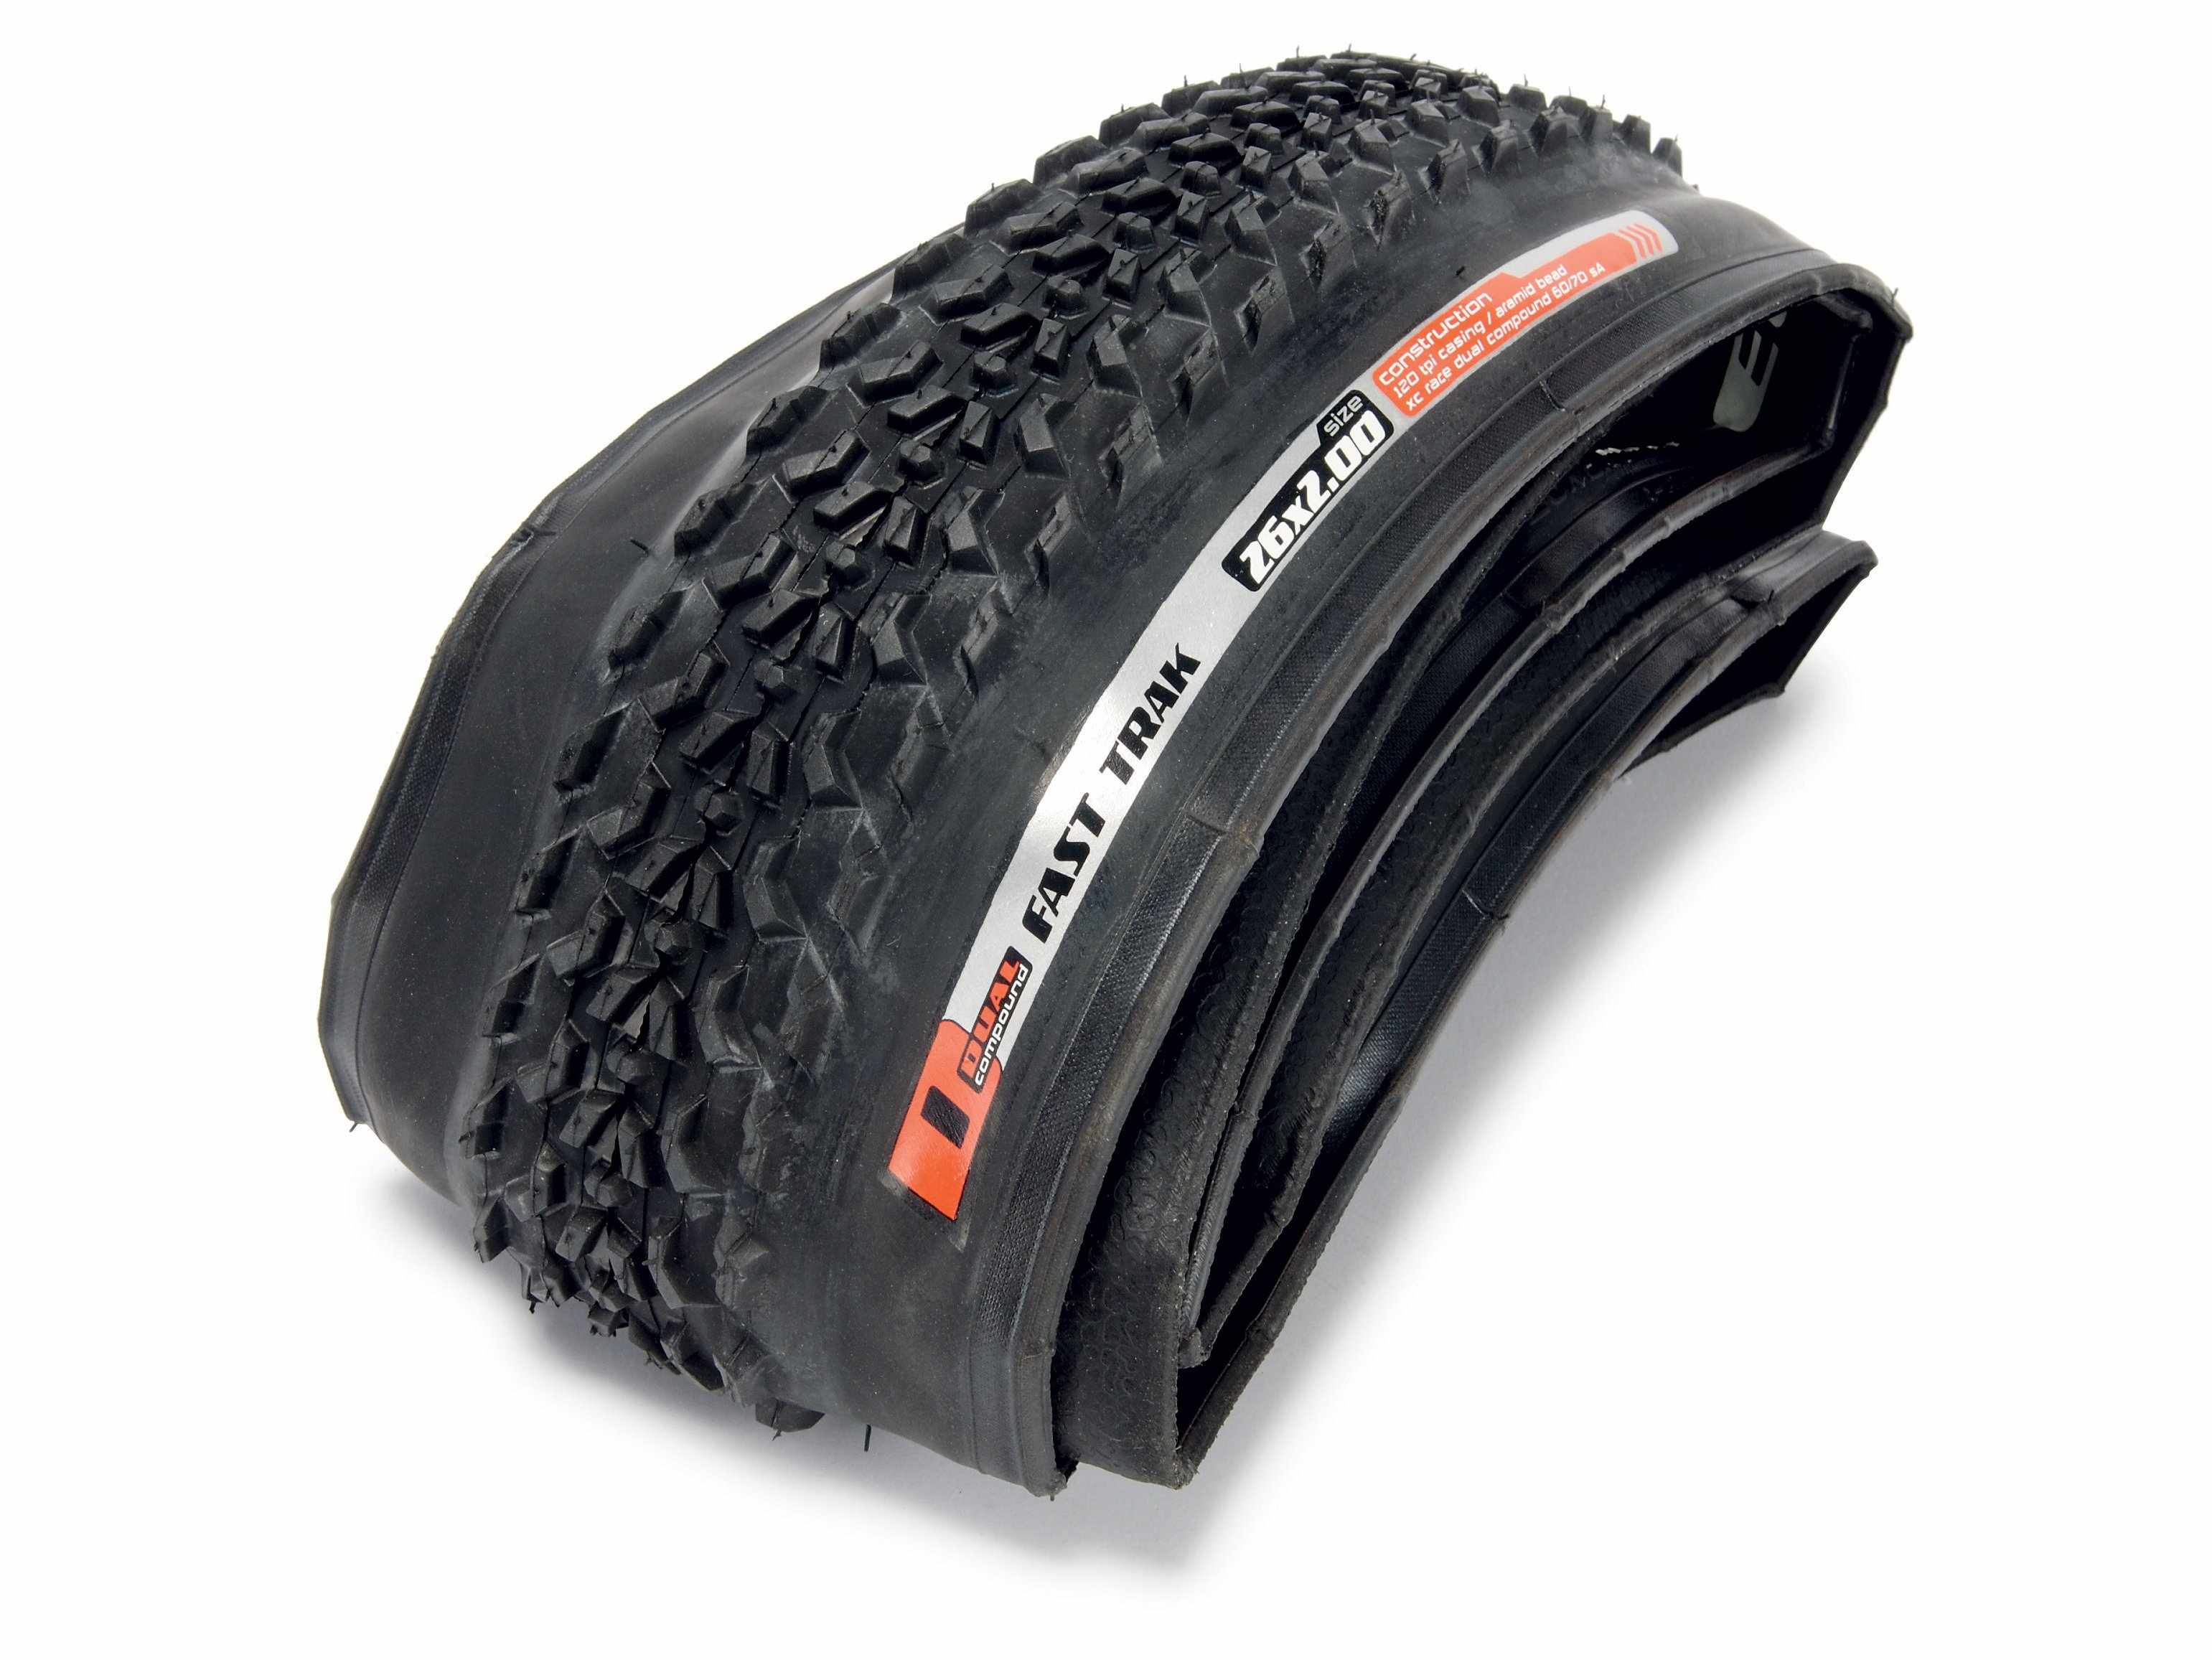 Hard wearing tyres for loose conditions